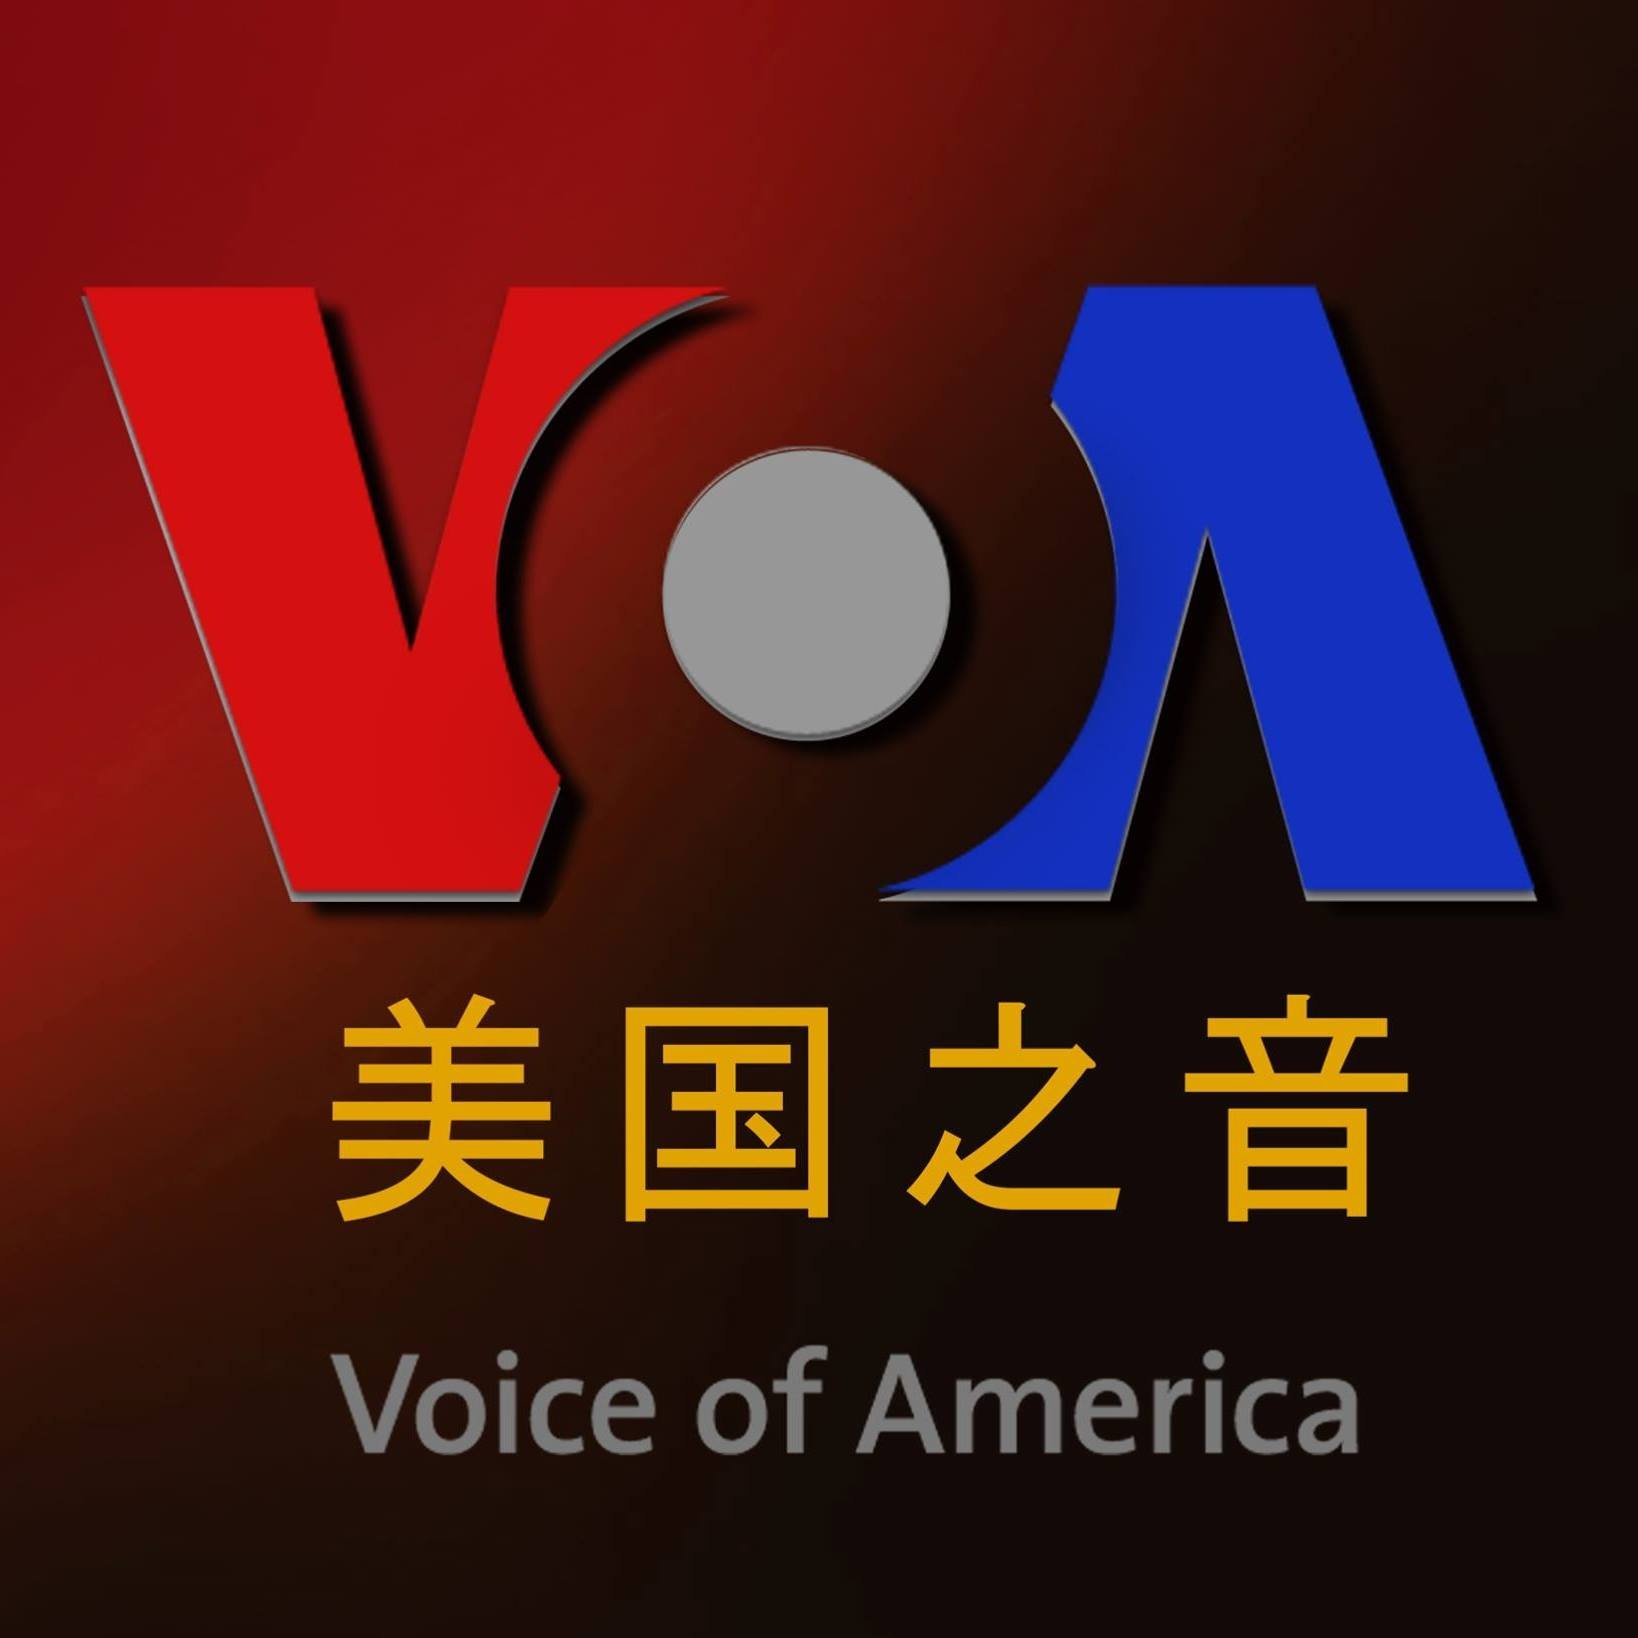 Filevoice Of America Chinese Logo3g Wikimedia Commons